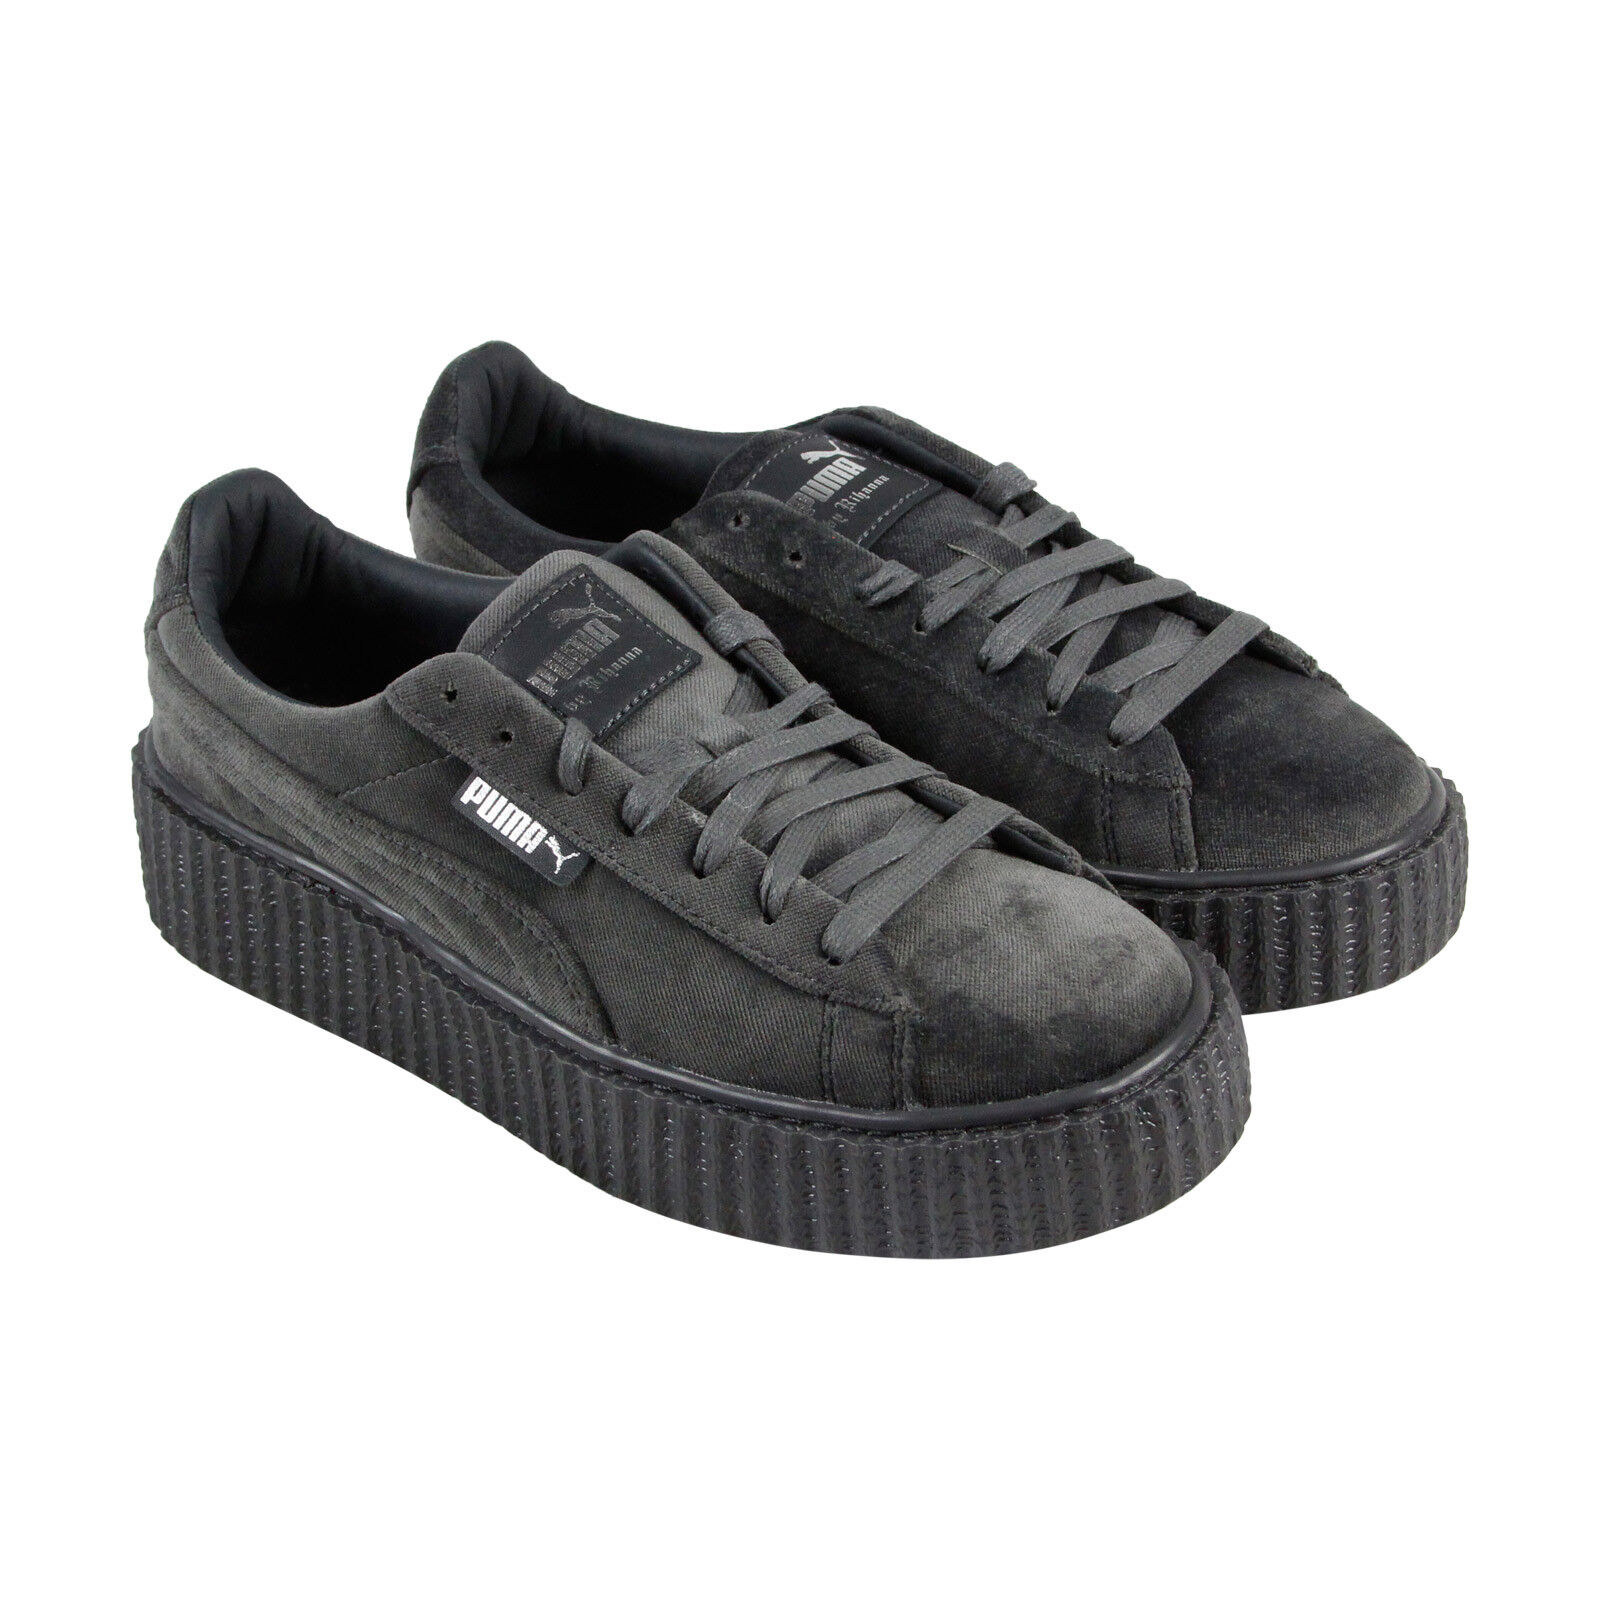 best deals on 43014 e0e82 Puma Fenty By Rihanna Creeper Velvet Womens Gray Casual Lace Up Sneakers  Shoes